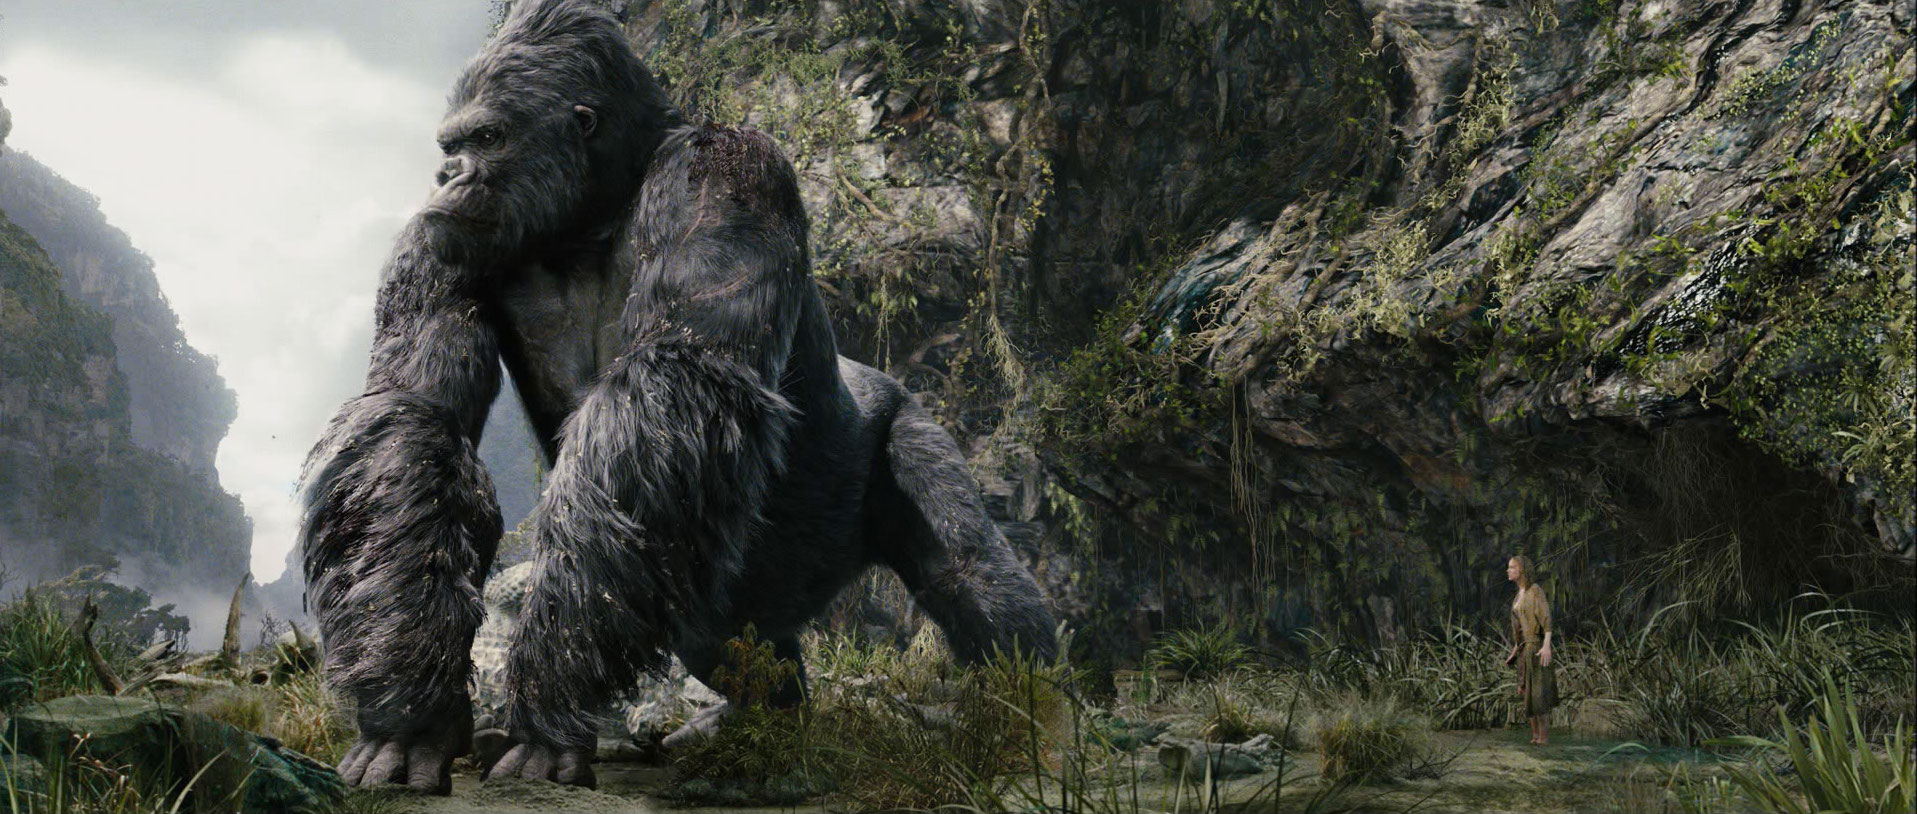 King Kong. I worked at Weta Digital in New Zealand for six months as Senior Compositor on the project.